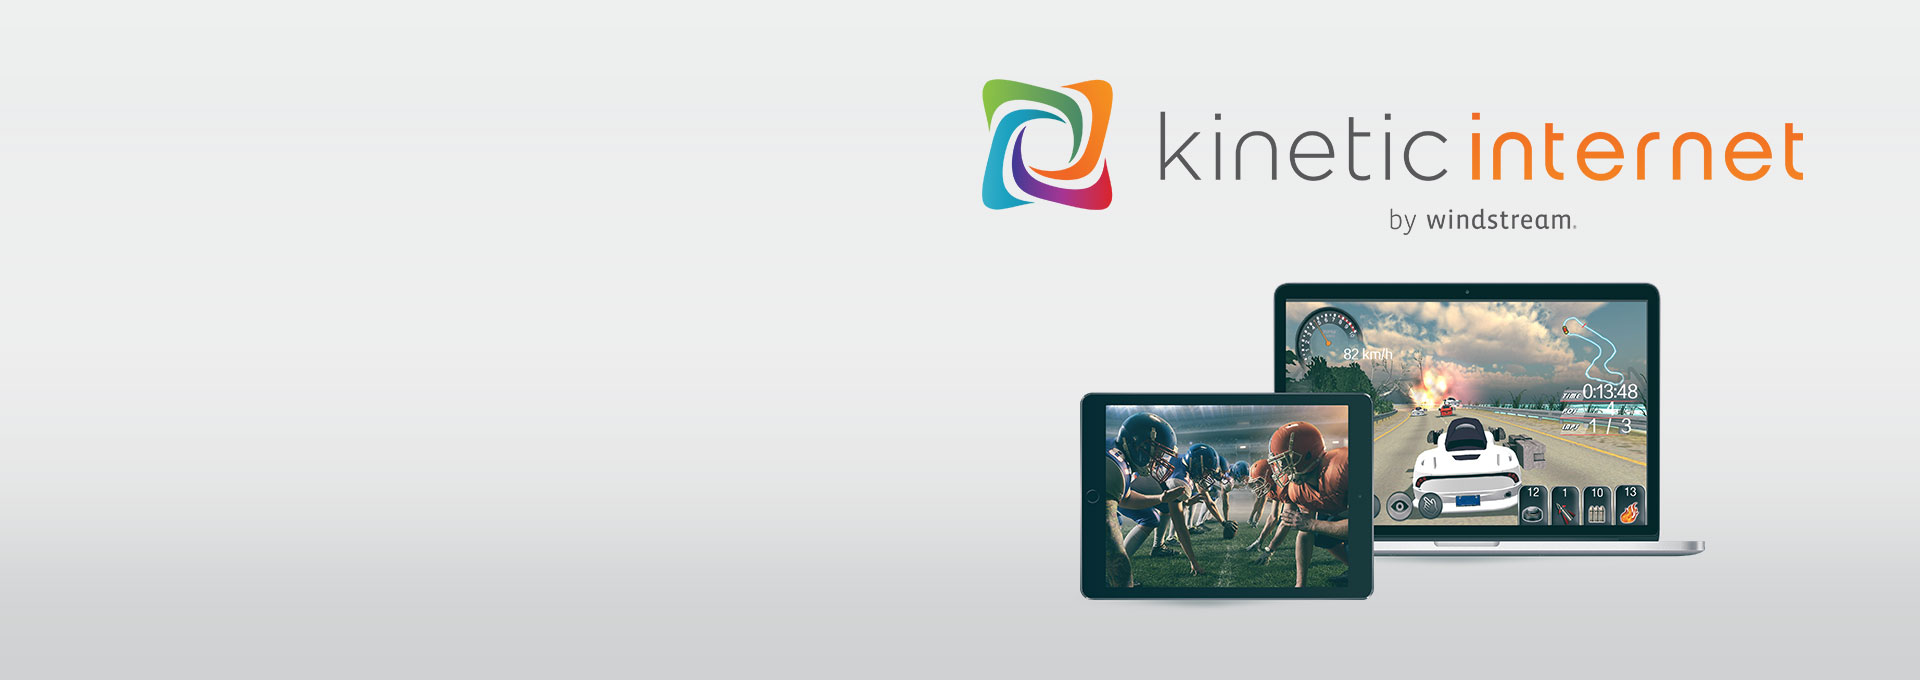 Introducing Kinetic Internet by Windstream